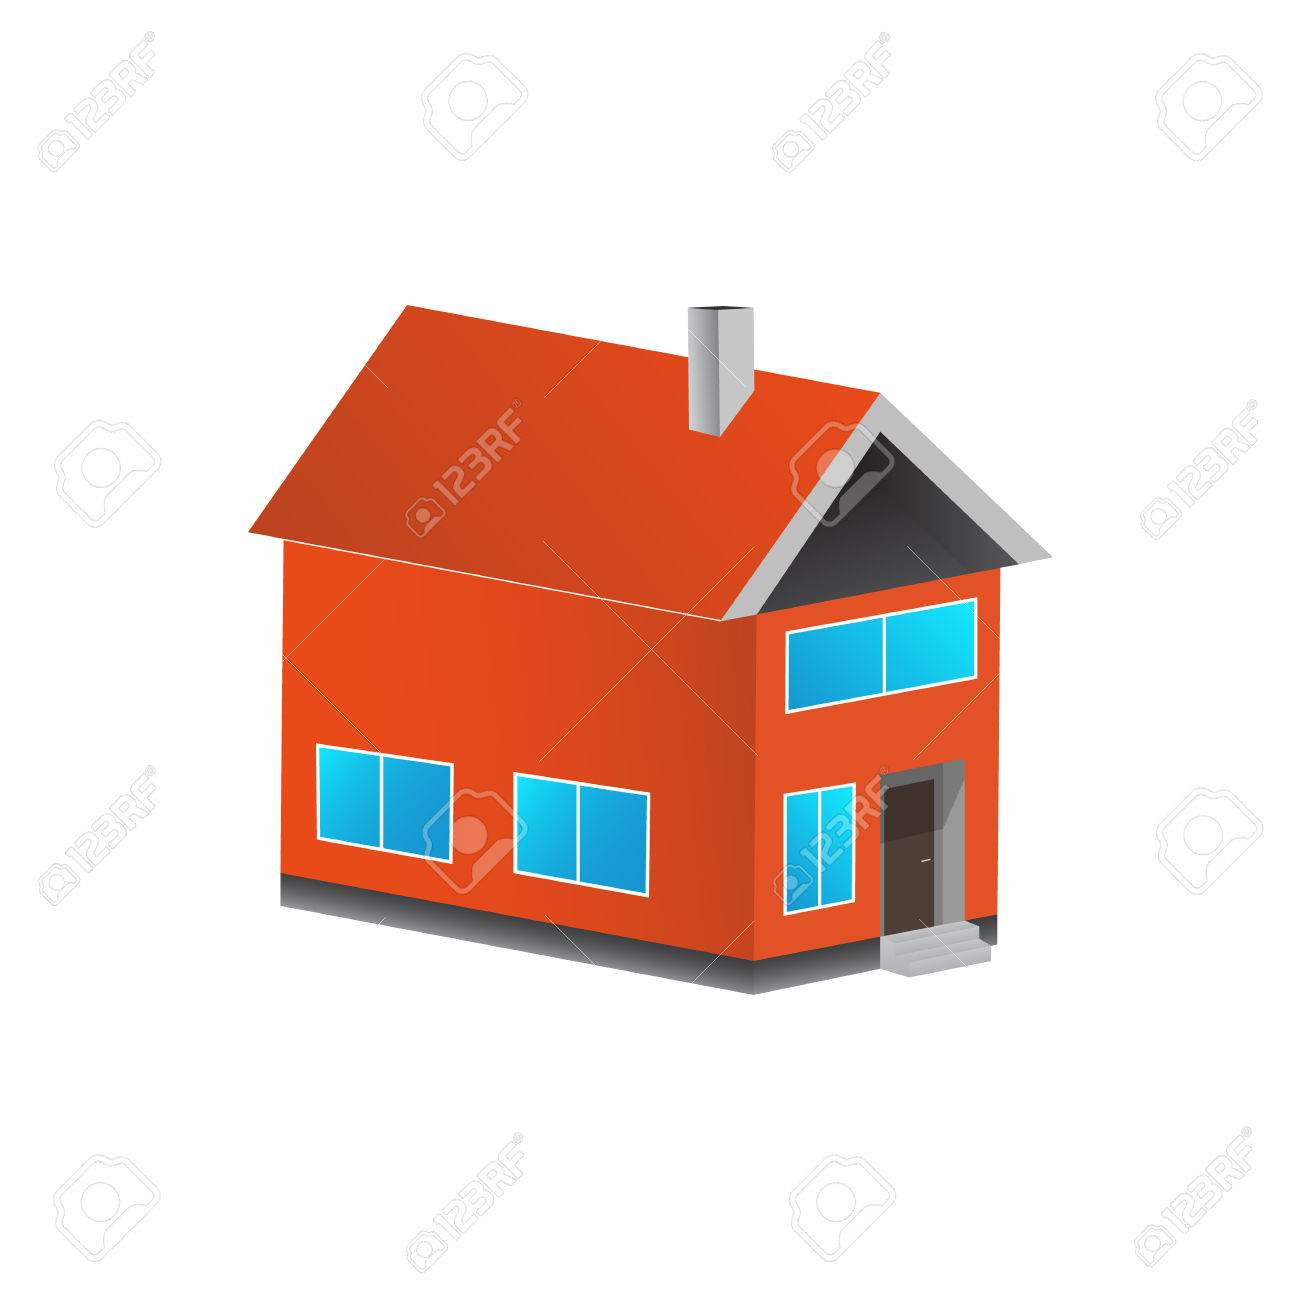 House flat icon. Design your own apartment. 3d colorful house..